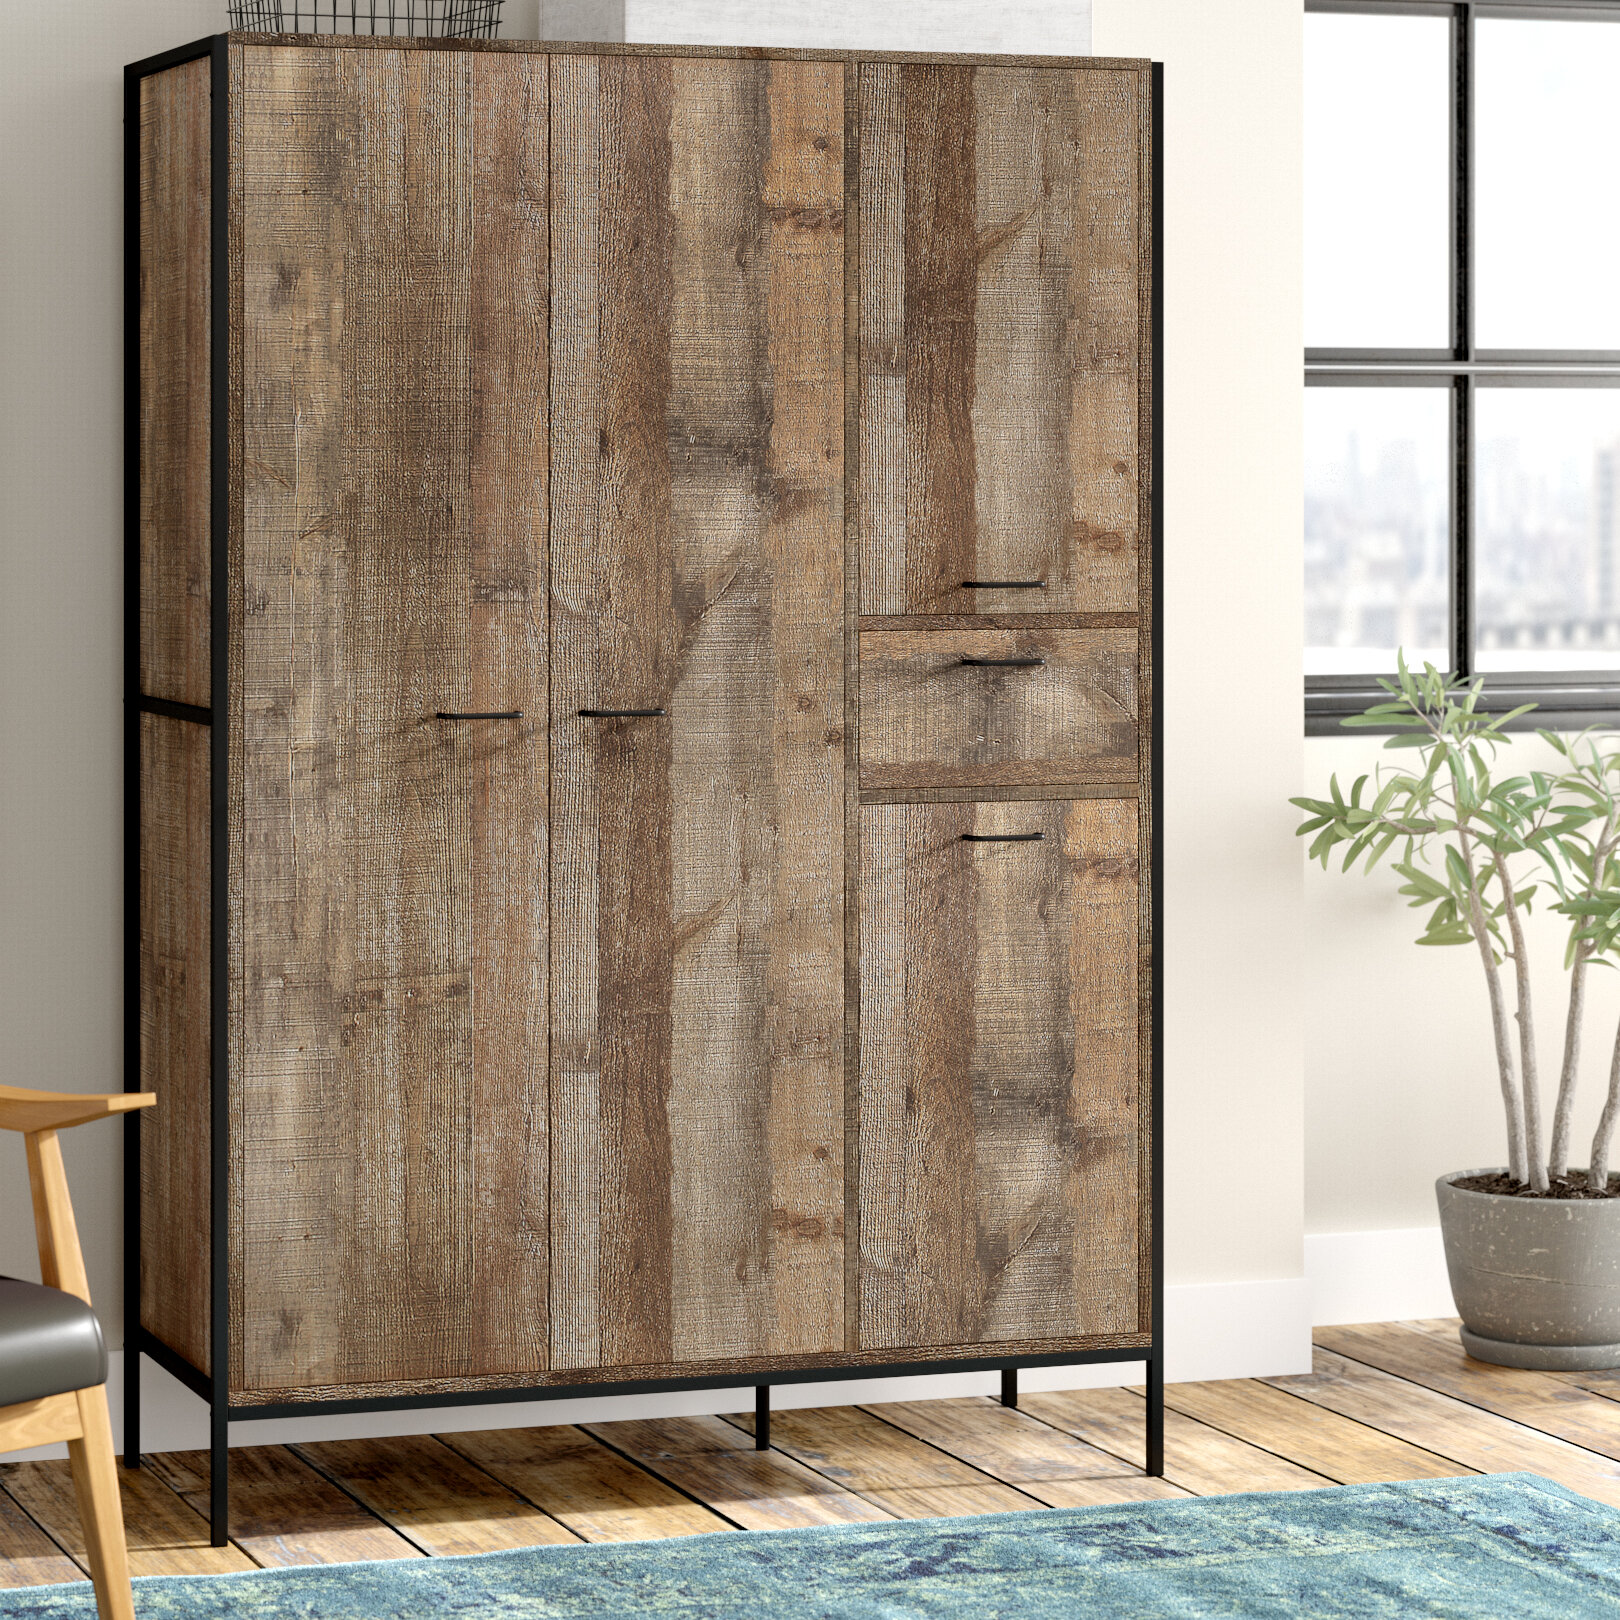 Williston Forge Drehtürenschrank Amesbury & Bewertungen | Wayfair.de